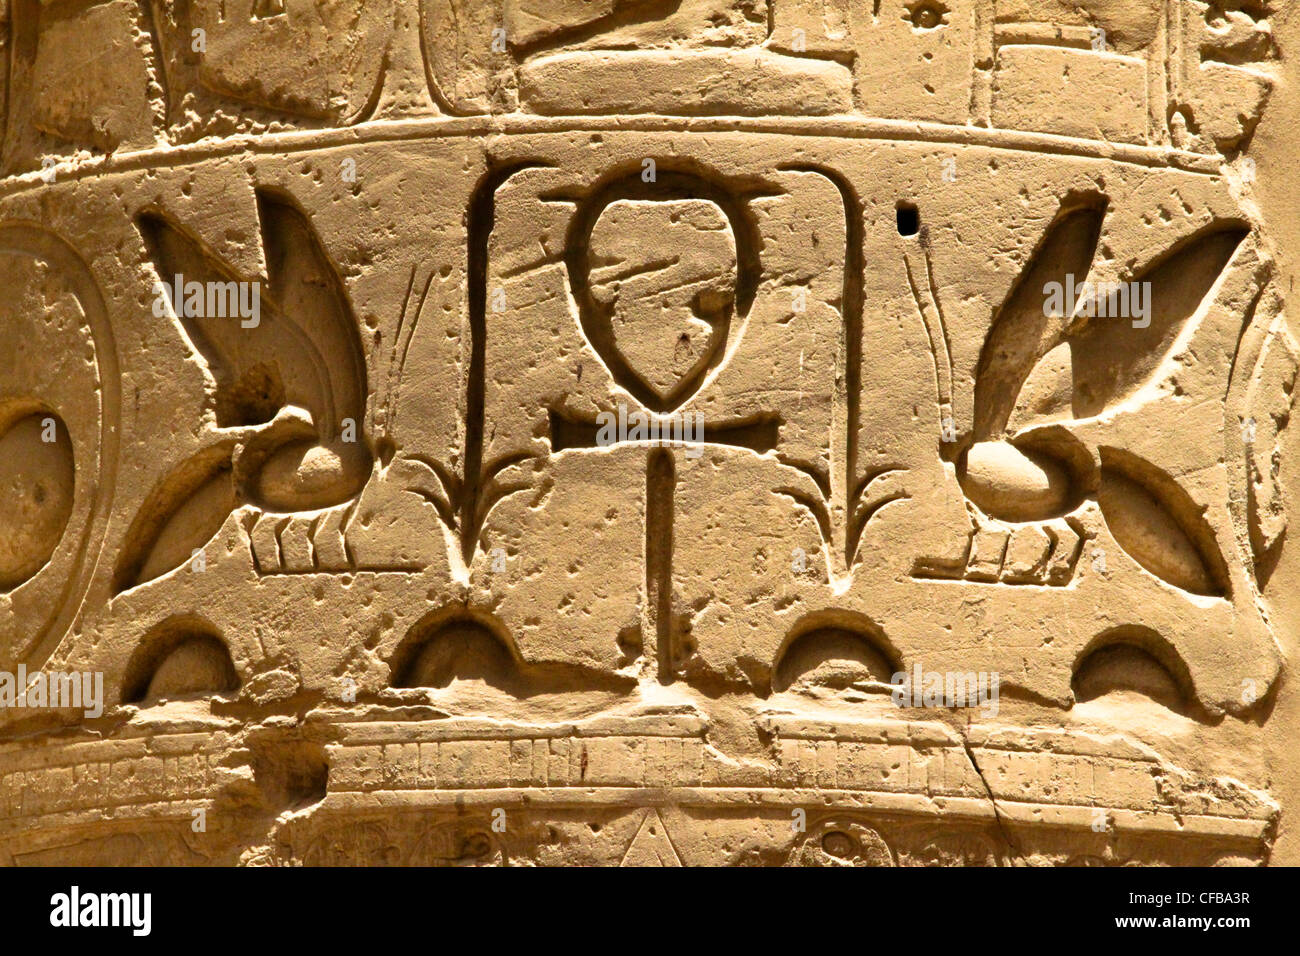 Hieroglyphics in bas-relief in the columns of the great temple of Karnak dedicated to the worship of Amun, in the Stock Photo